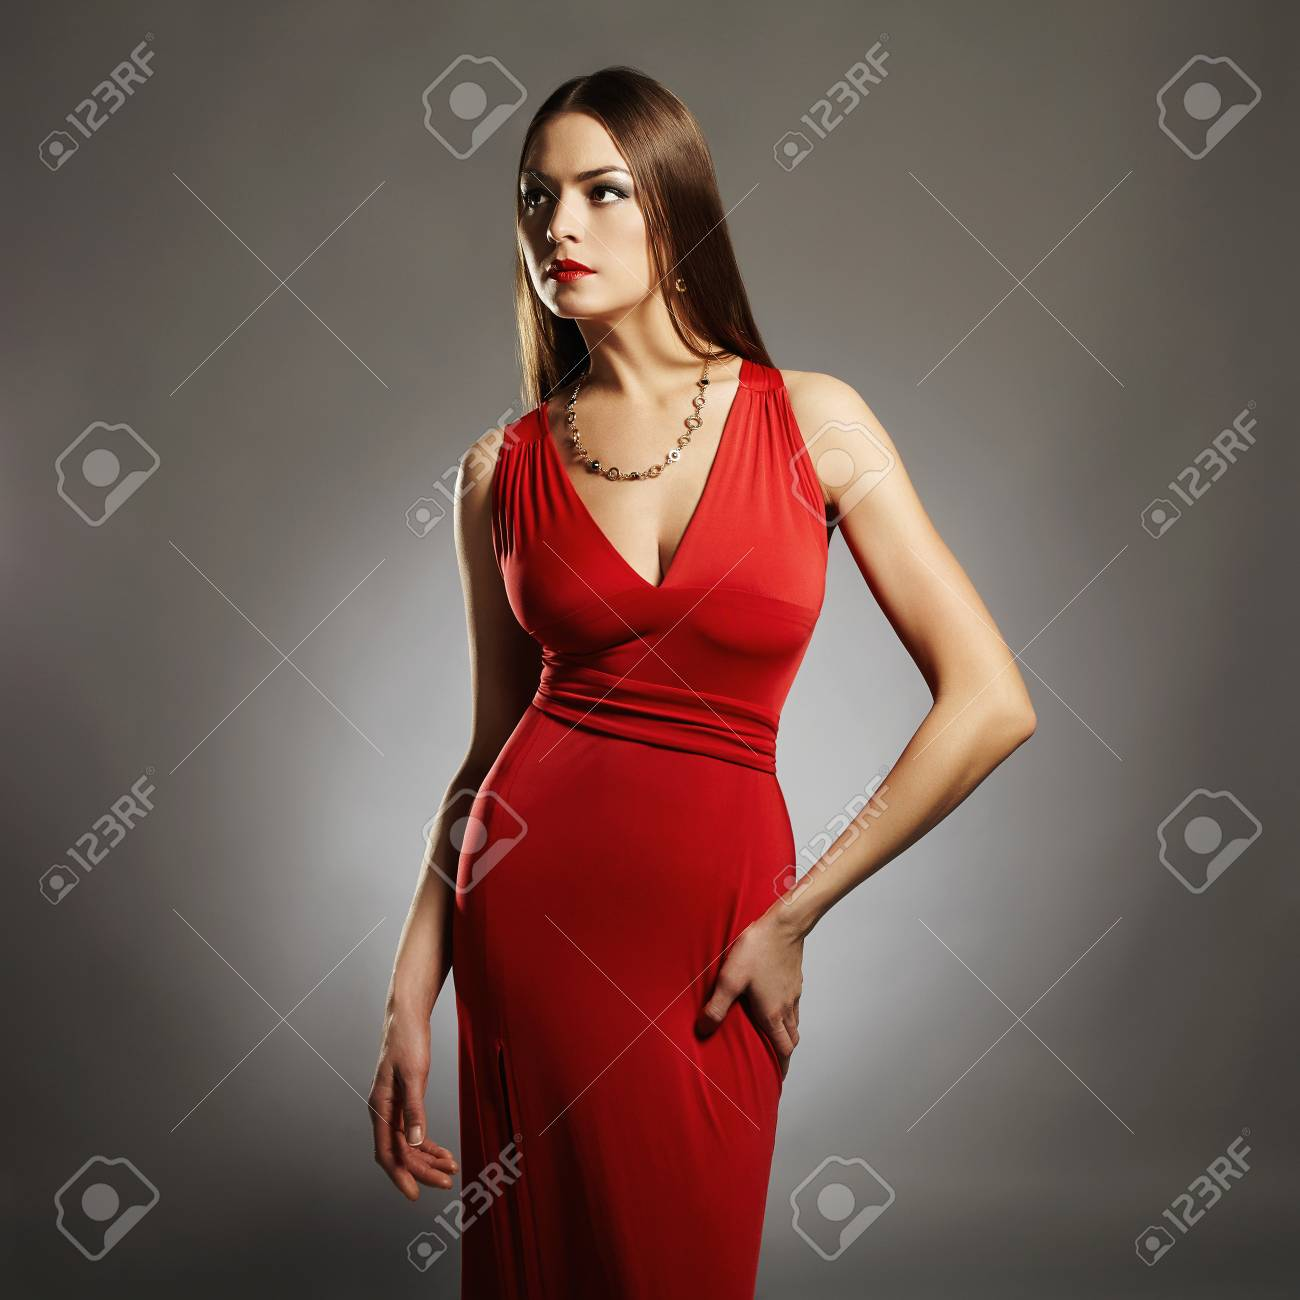 Stock Photo Young Beautiful Sexy Woman Beauty Brunette Girl With Perfect Body Elegant Lady In Red Dress